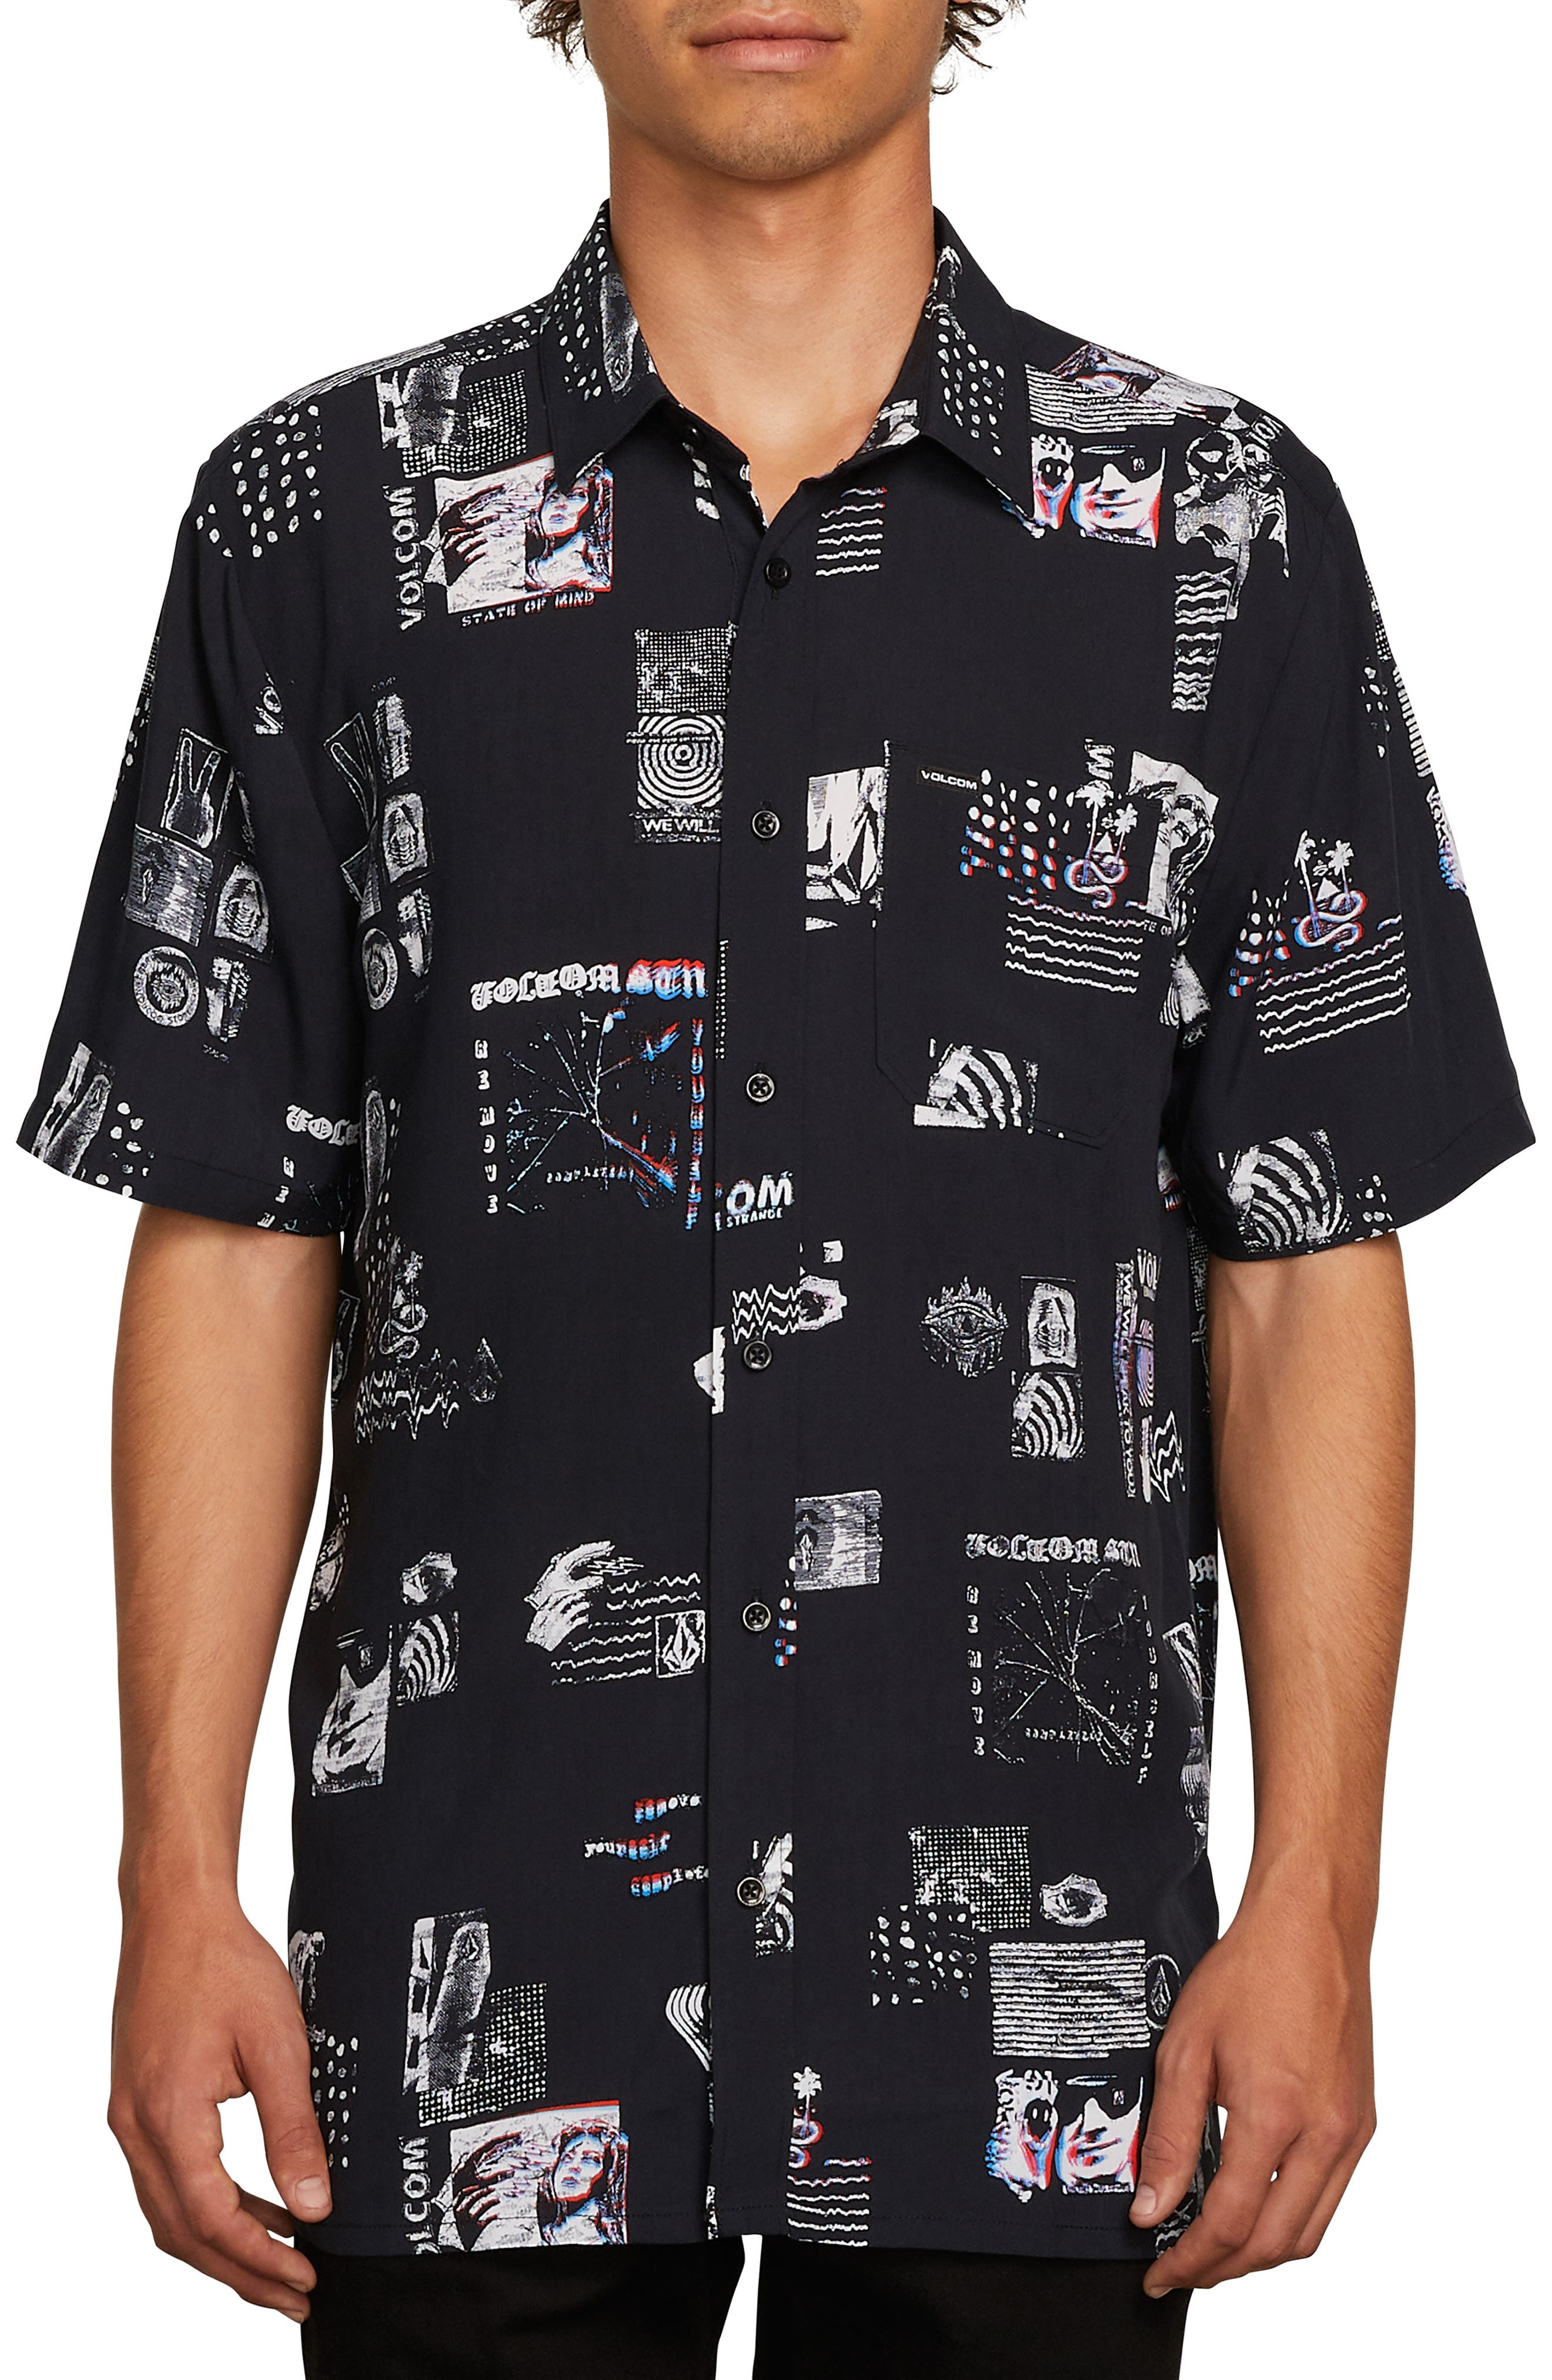 Speak to You Woven Shirt,                         Main,                         color, BLACK